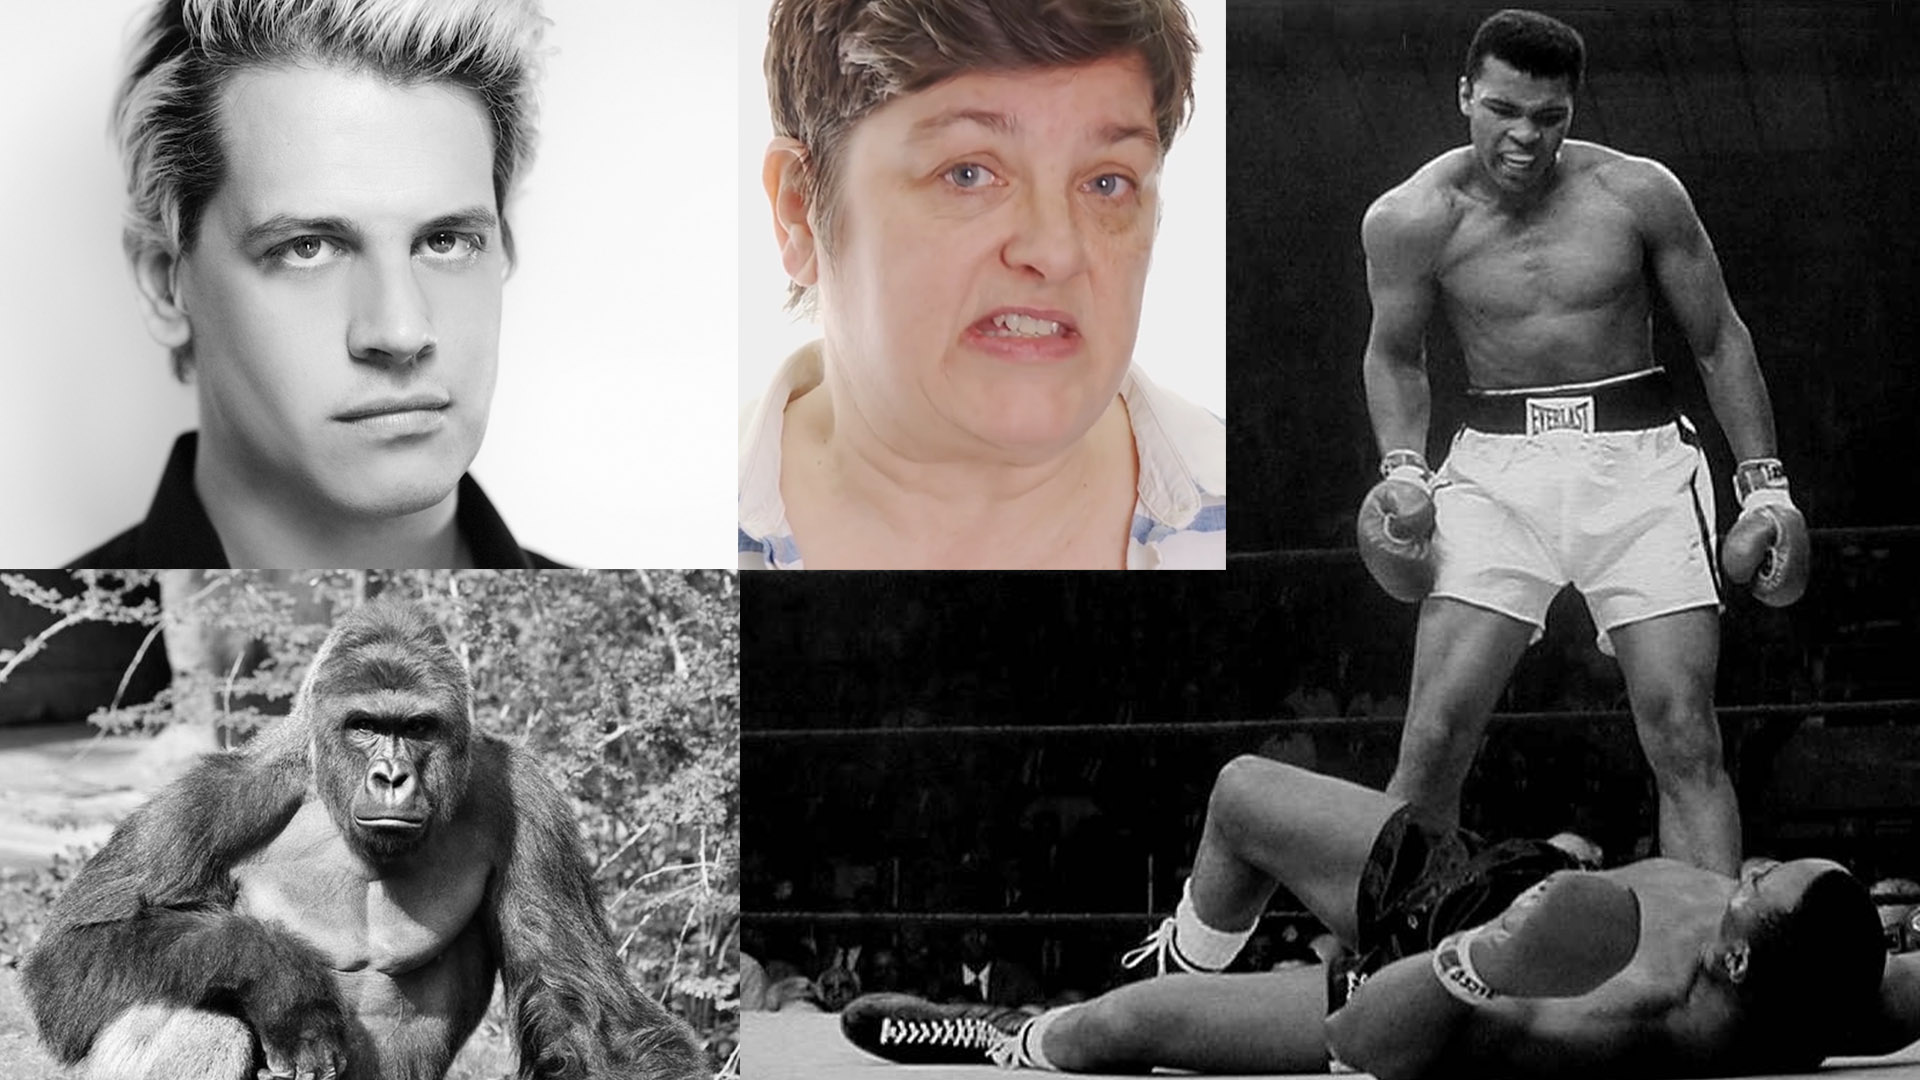 WDiL! - Feminist Marriage, Muhammad Ali, Abortion, Milo Yiannopoulos